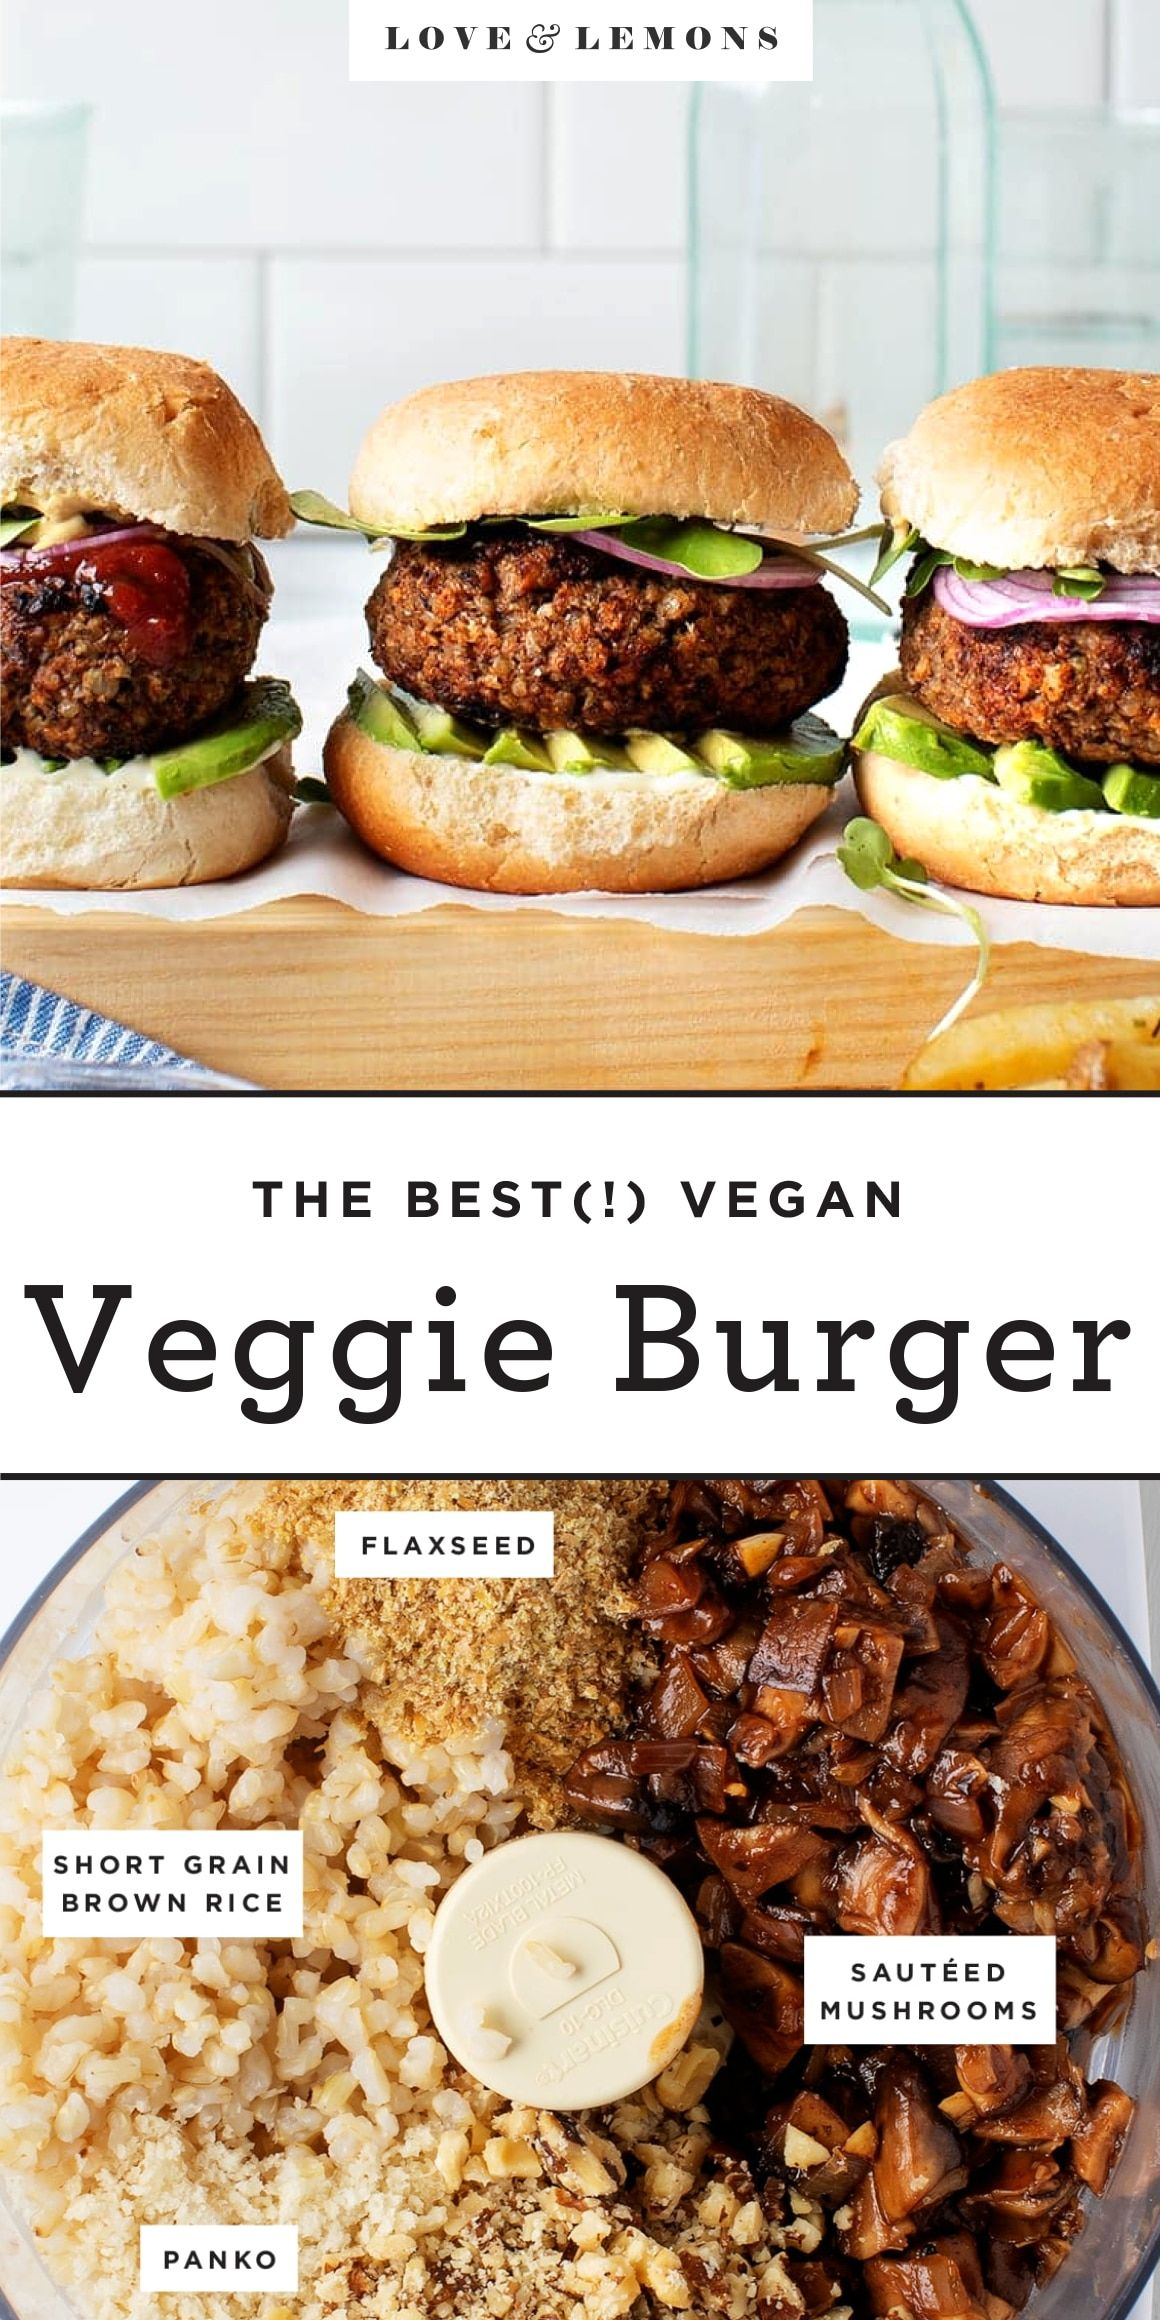 The BEST Veggie Burger EVER! They're tangy, smoky, savory, and have a hearty texture from walnuts and mushrooms. Vegan, grillable, and a hit with my meat-eating family!   Love and Lemons #vegan #veggieburger #vegetarian #healthyrecipes #mushrooms